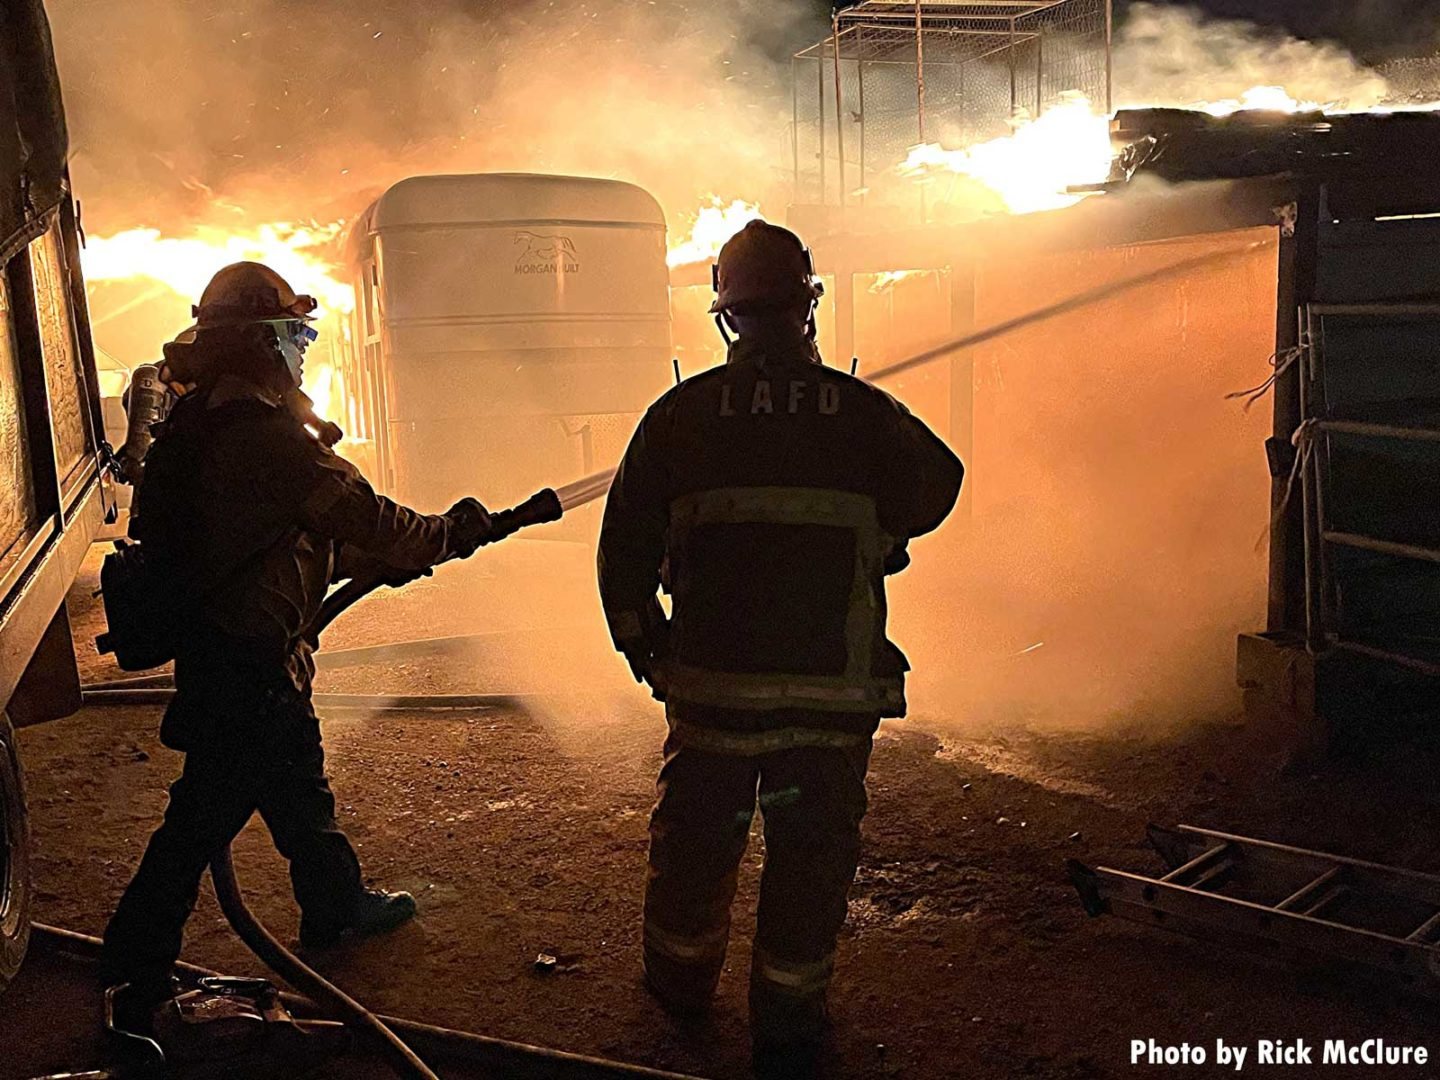 Firefighters with hose putting water on flames